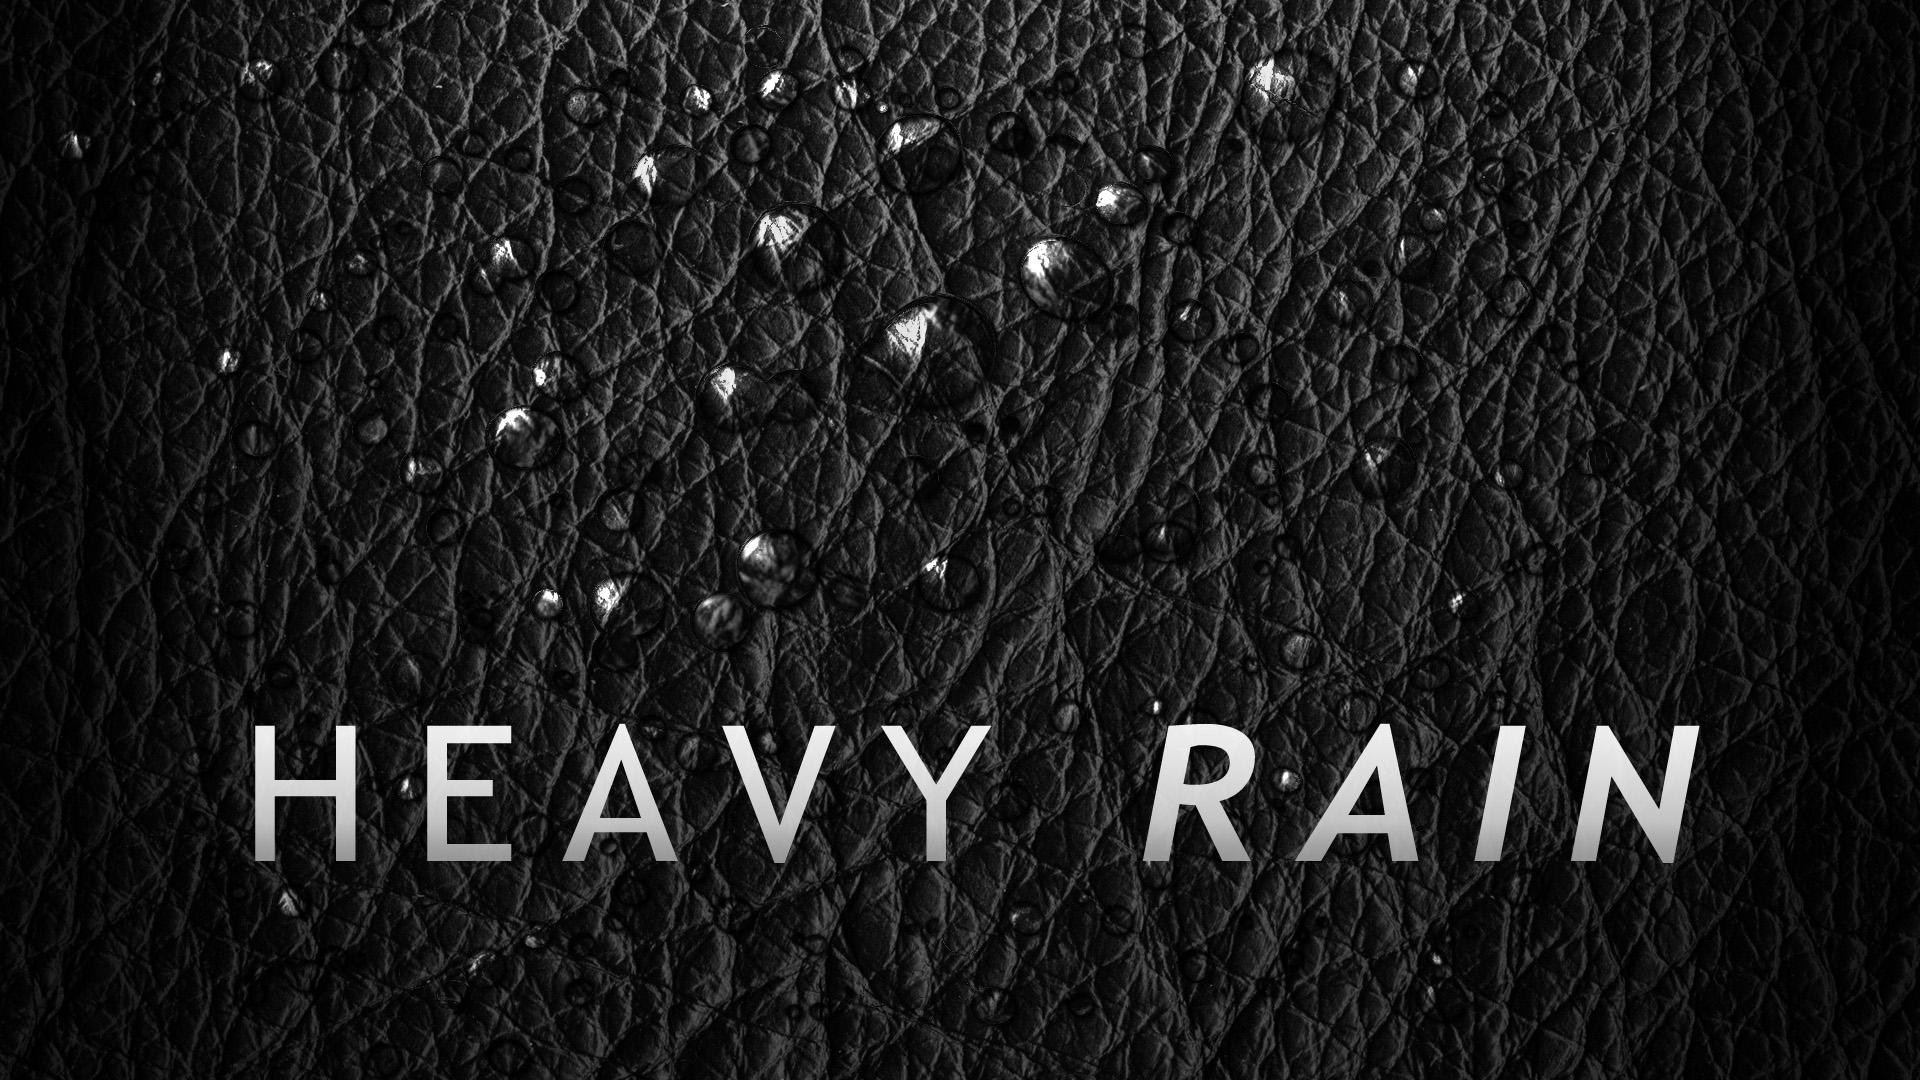 HD Images Collection of Heavy: 27454014 by Pamela Sheeran